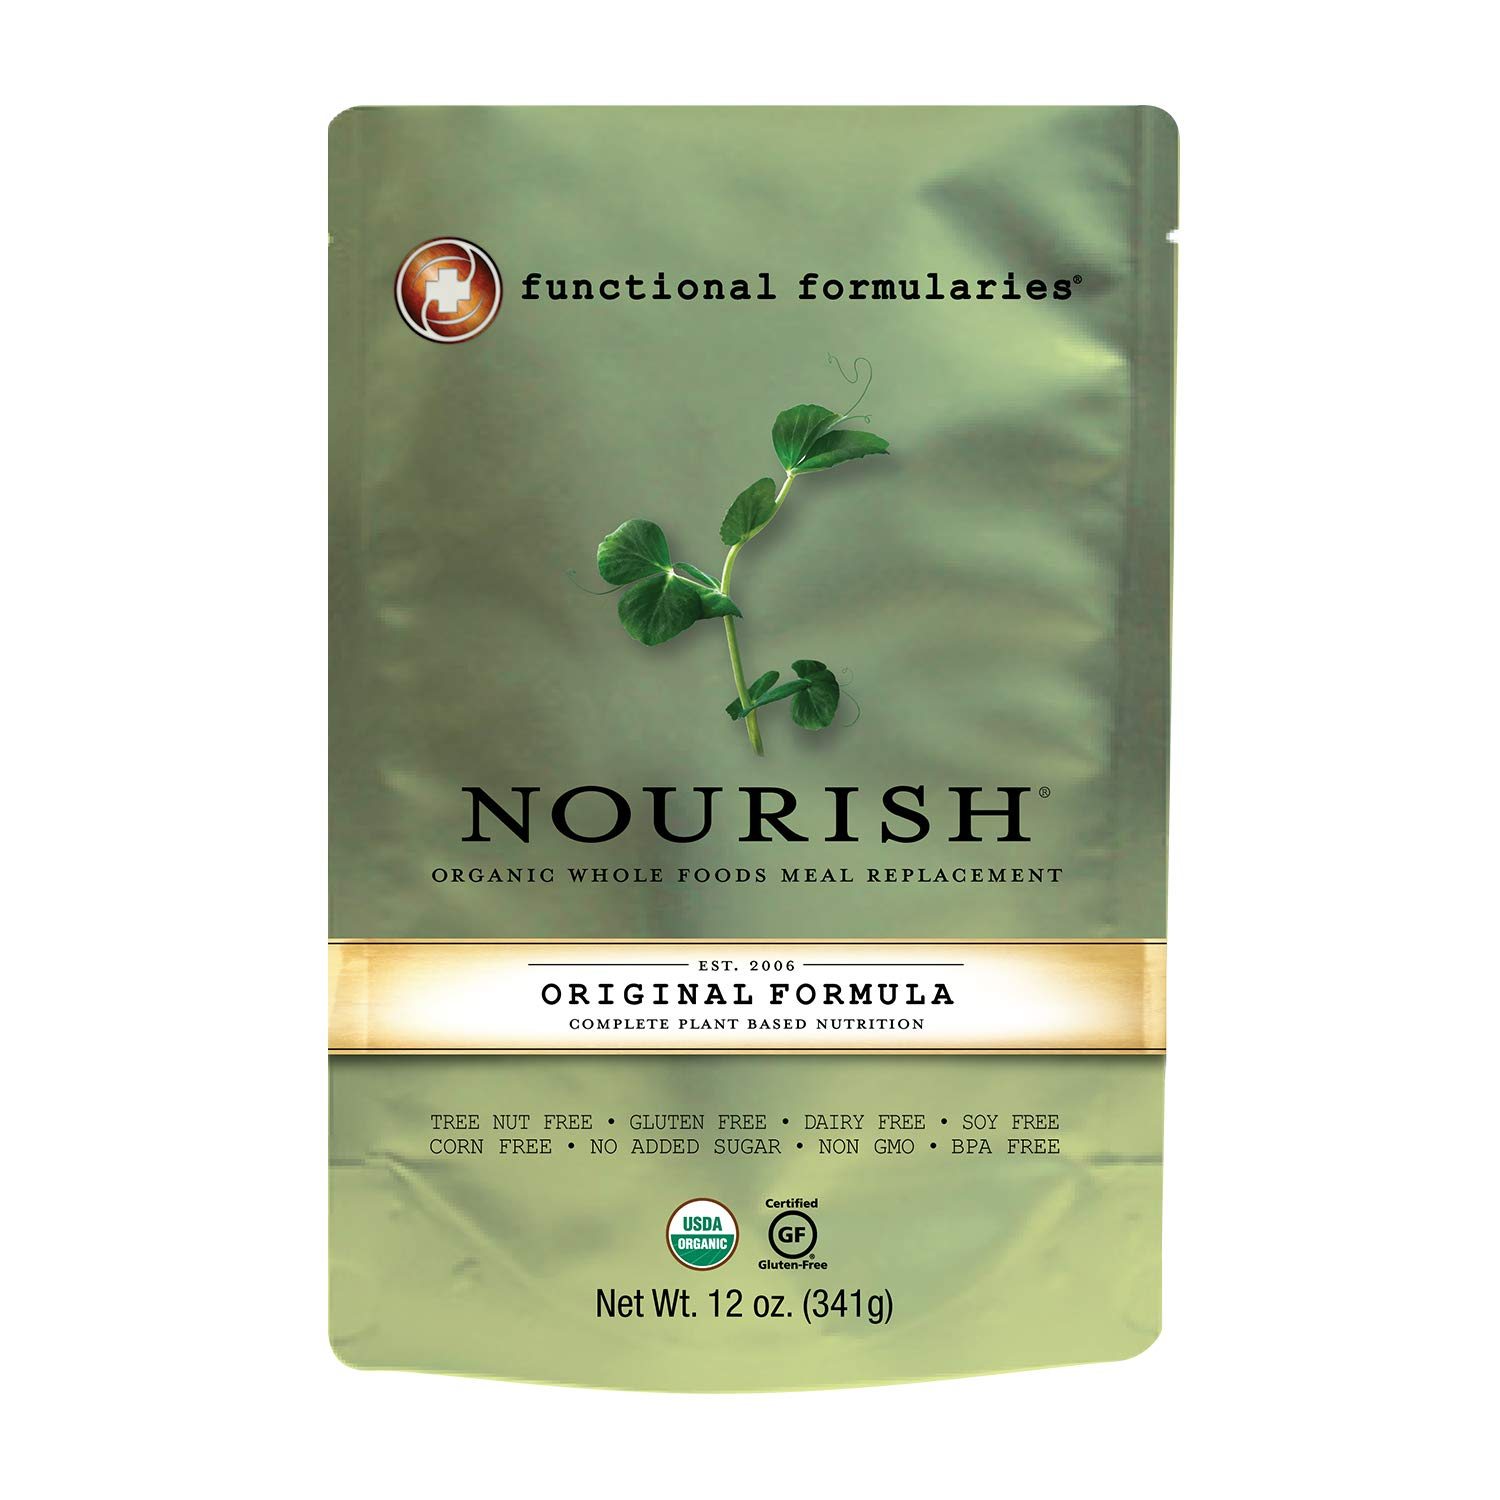 Functional Formularies Nourish Organic Tube Feeding Formula and Nutritional Meal Replacement Supplement, Single